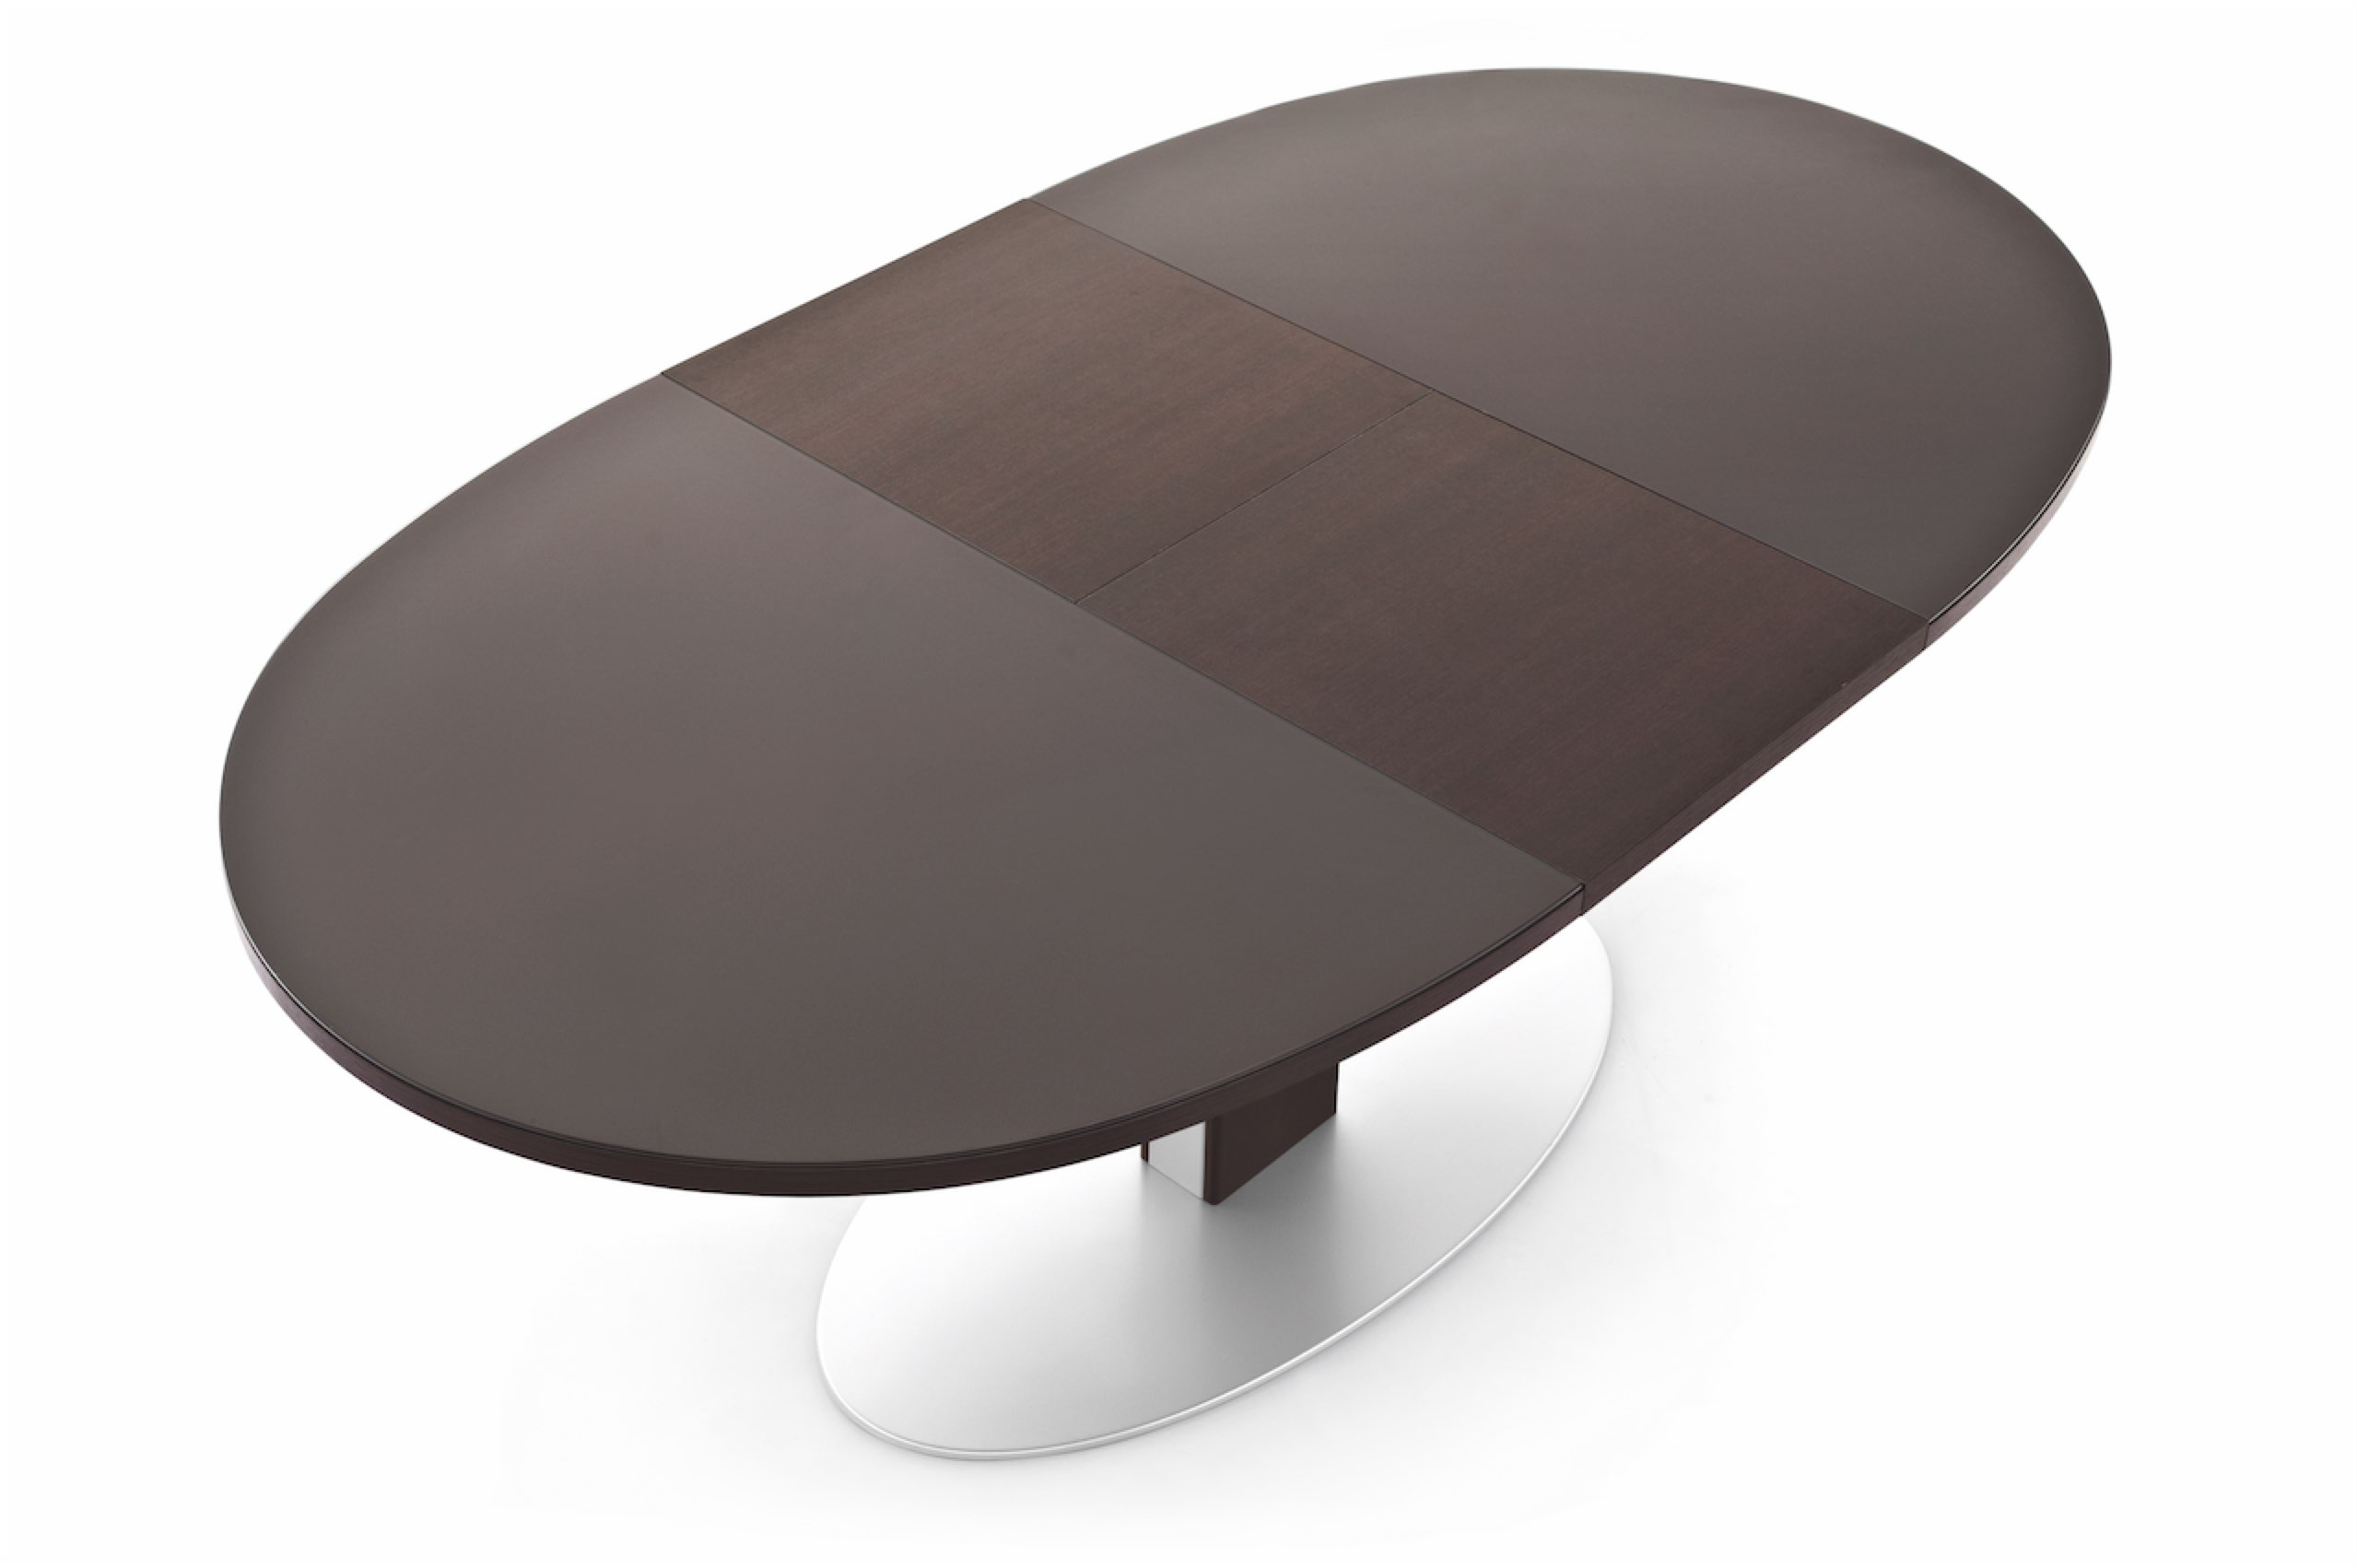 Calligaris Connubia Glas Dining Table Thesis CB4756 E in  : 1473004909Thesiscb4756 EGKP128UPop from www.ebay.ie size 2558 x 1702 jpeg 156kB